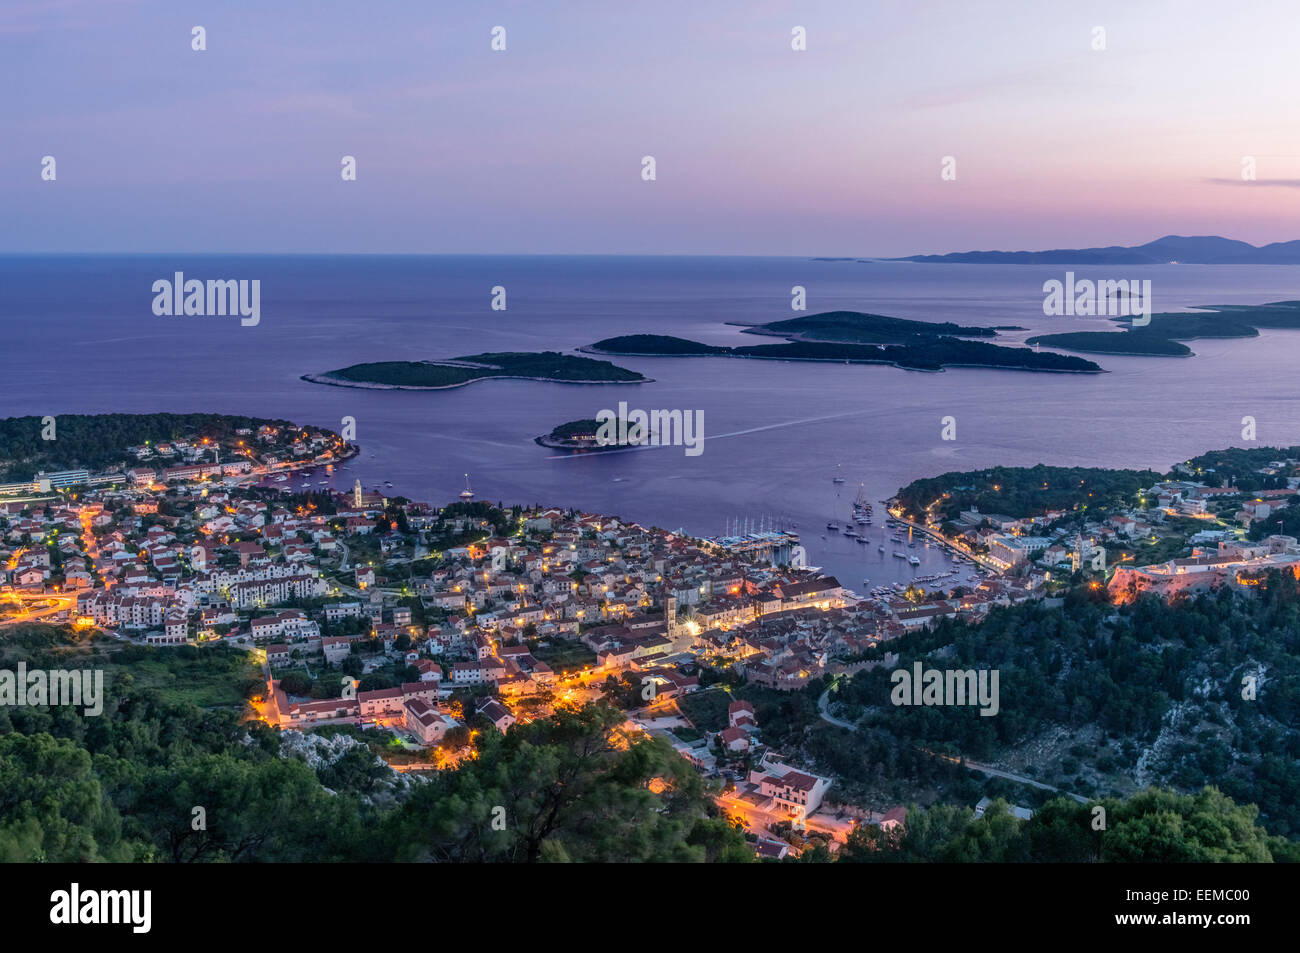 Aerial view of coastal town illuminated at night - Stock Image